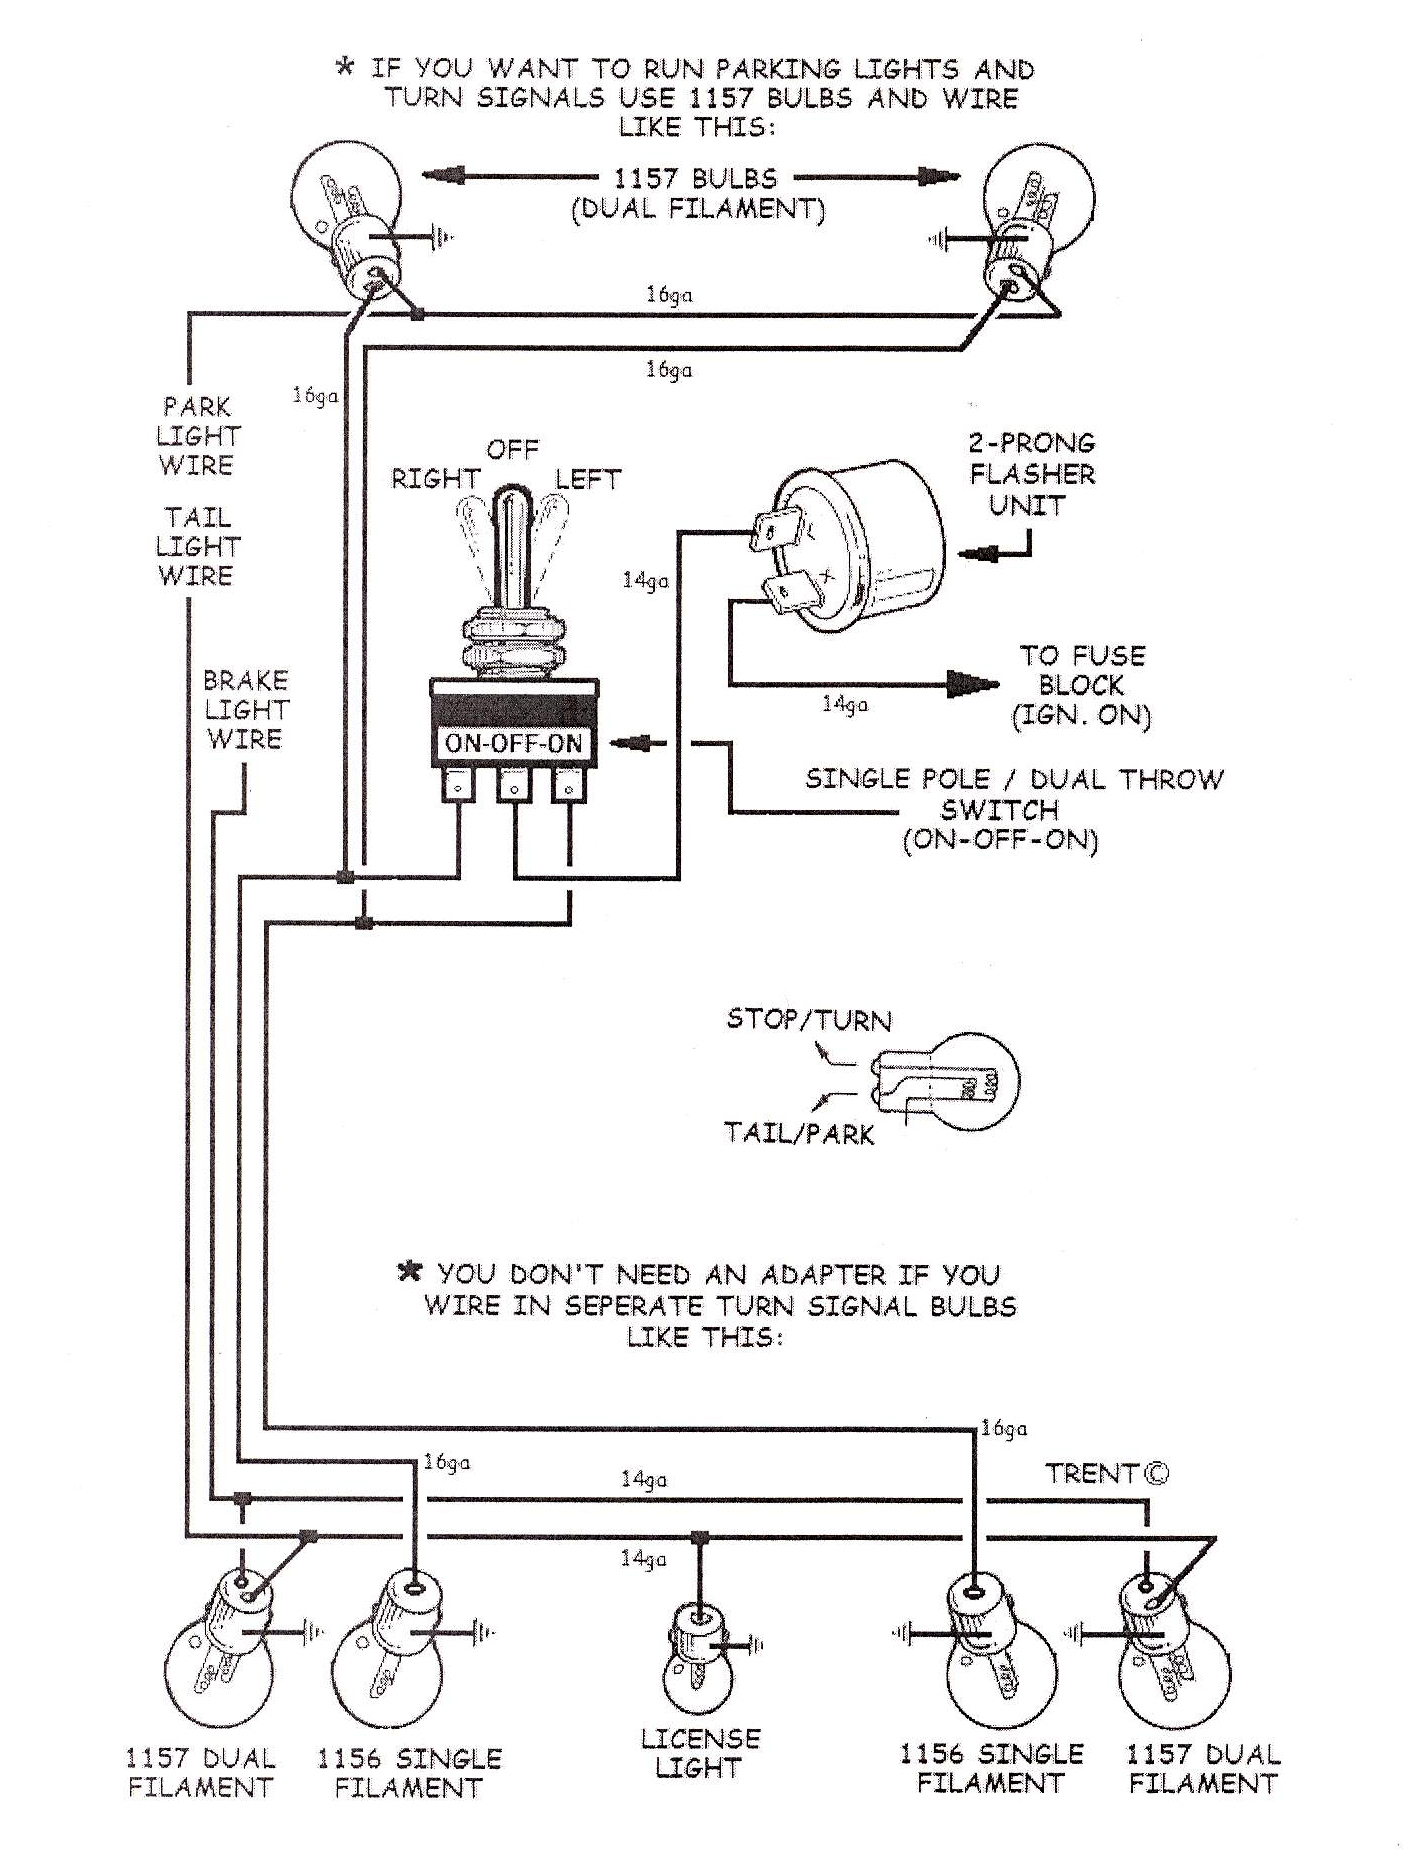 Ididit Column Wiring Diagram - Wiring Diagrams Click on 1973 nova steering column diagram, 1970 nova steering column diagram, 1963 nova steering column diagram, 1964 nova steering column diagram, ford power steering diagram, 1969 nova steering column diagram, 1965 nova steering column diagram, 1968 nova steering column diagram, 1966 nova wiring diagram, 1971 nova steering column diagram, 1974 nova steering column diagram,